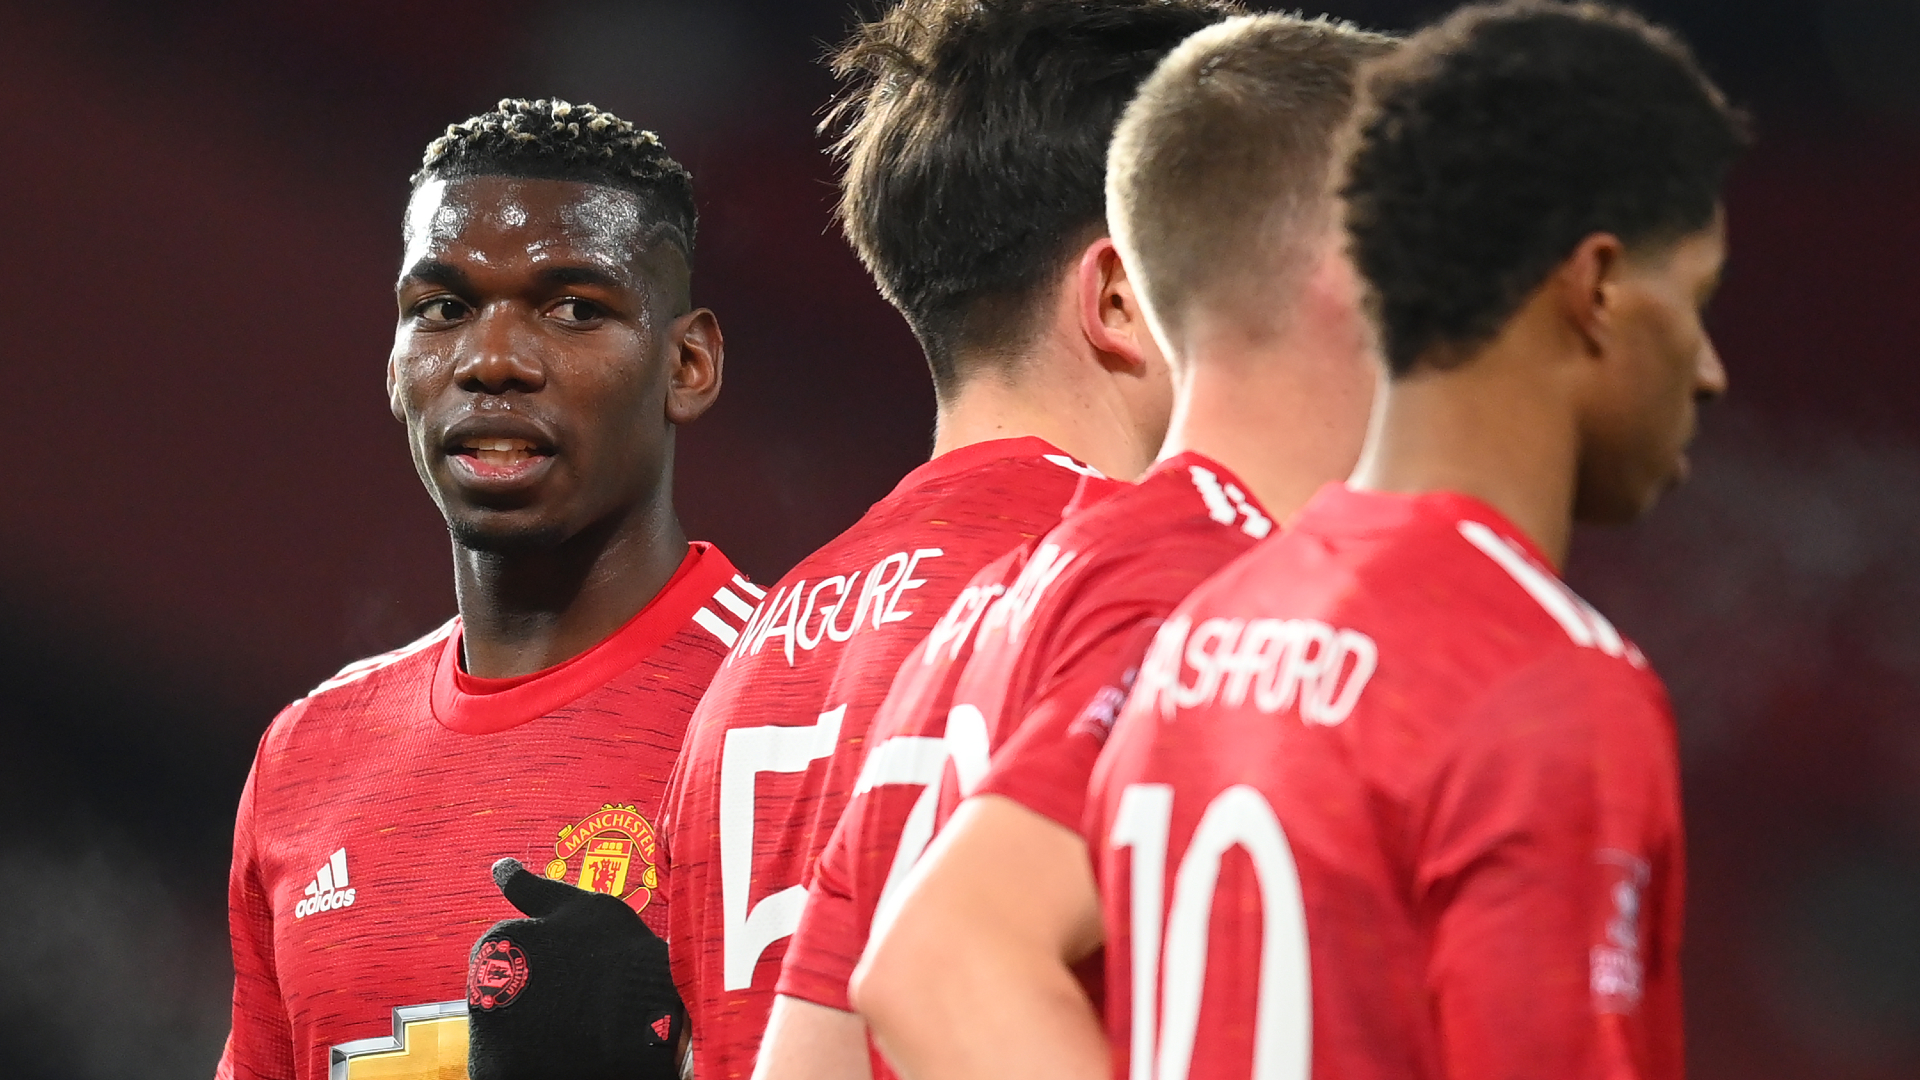 Pogba claims Man Utd players no longer 'cheating' each other as Red Devils chase title